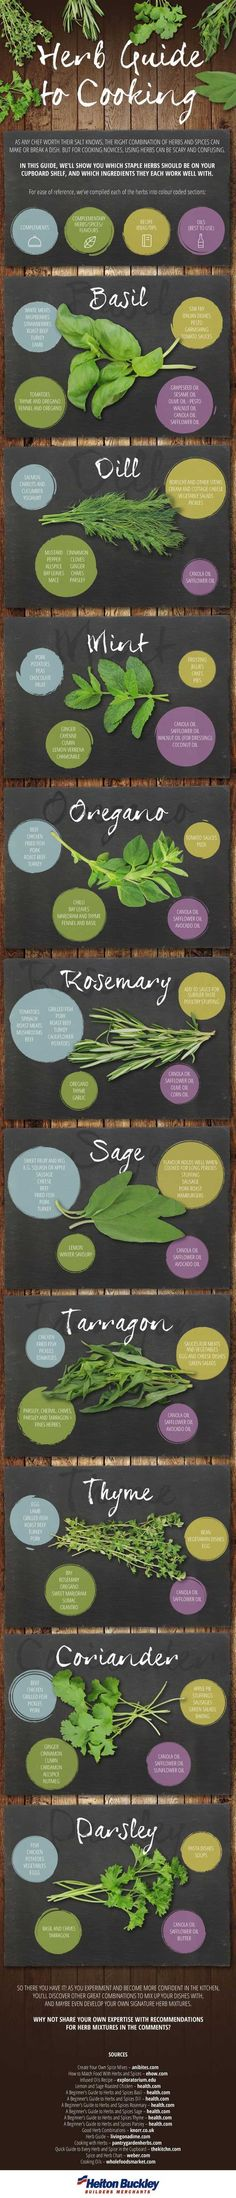 Herb guide to cooking - Imgur